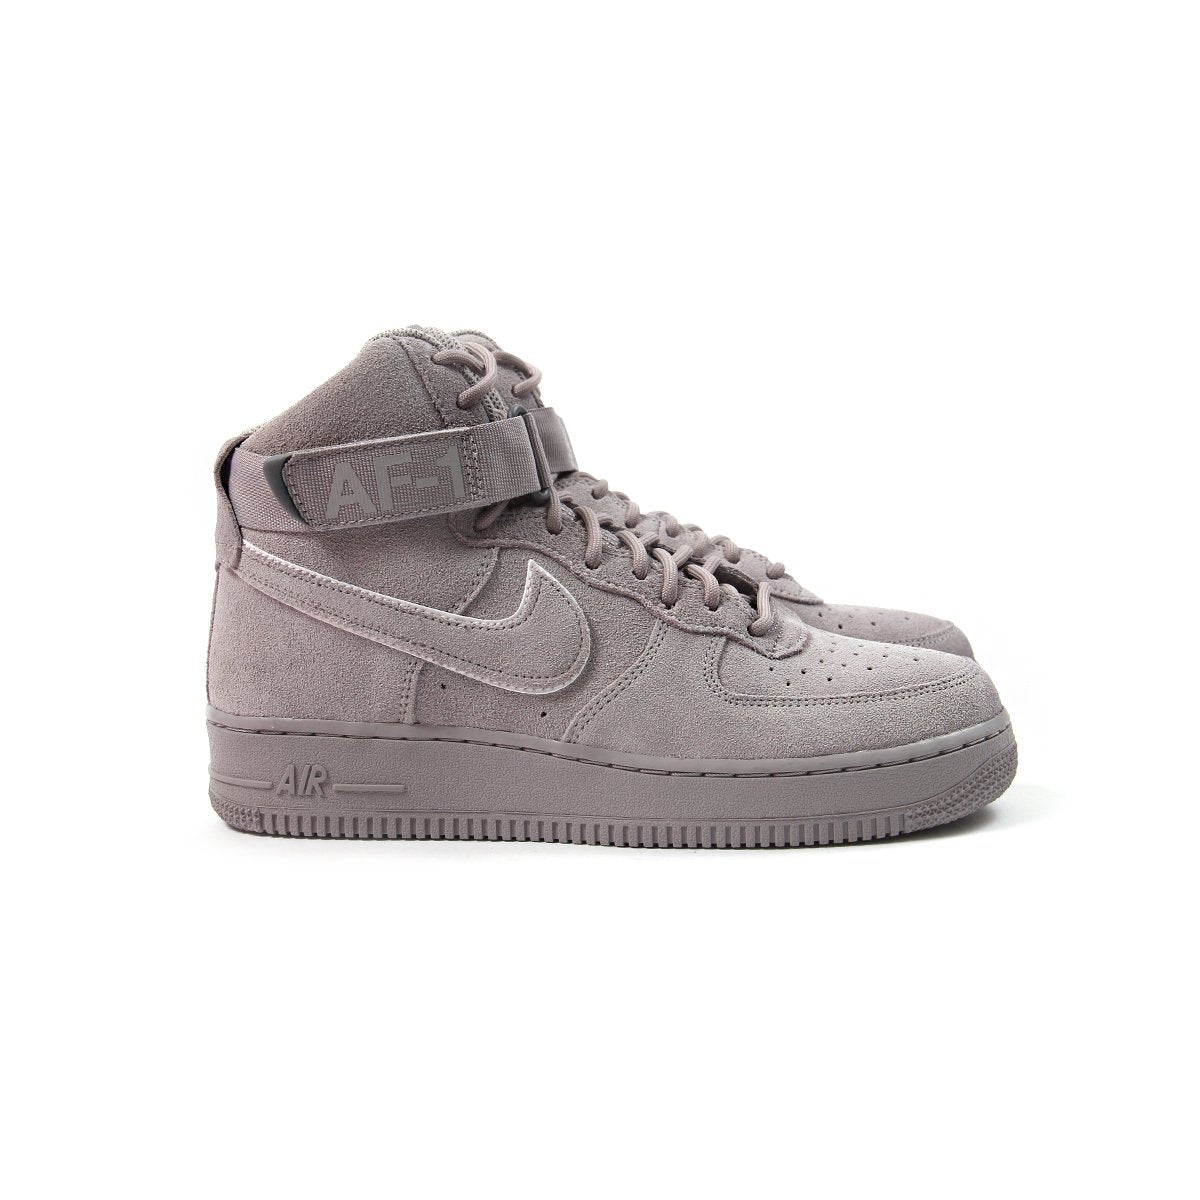 outlet store 8be8e e4cb0 ConceptsIntl | Nike Air Force 1 High '07 LV8 (Atmosphere ...